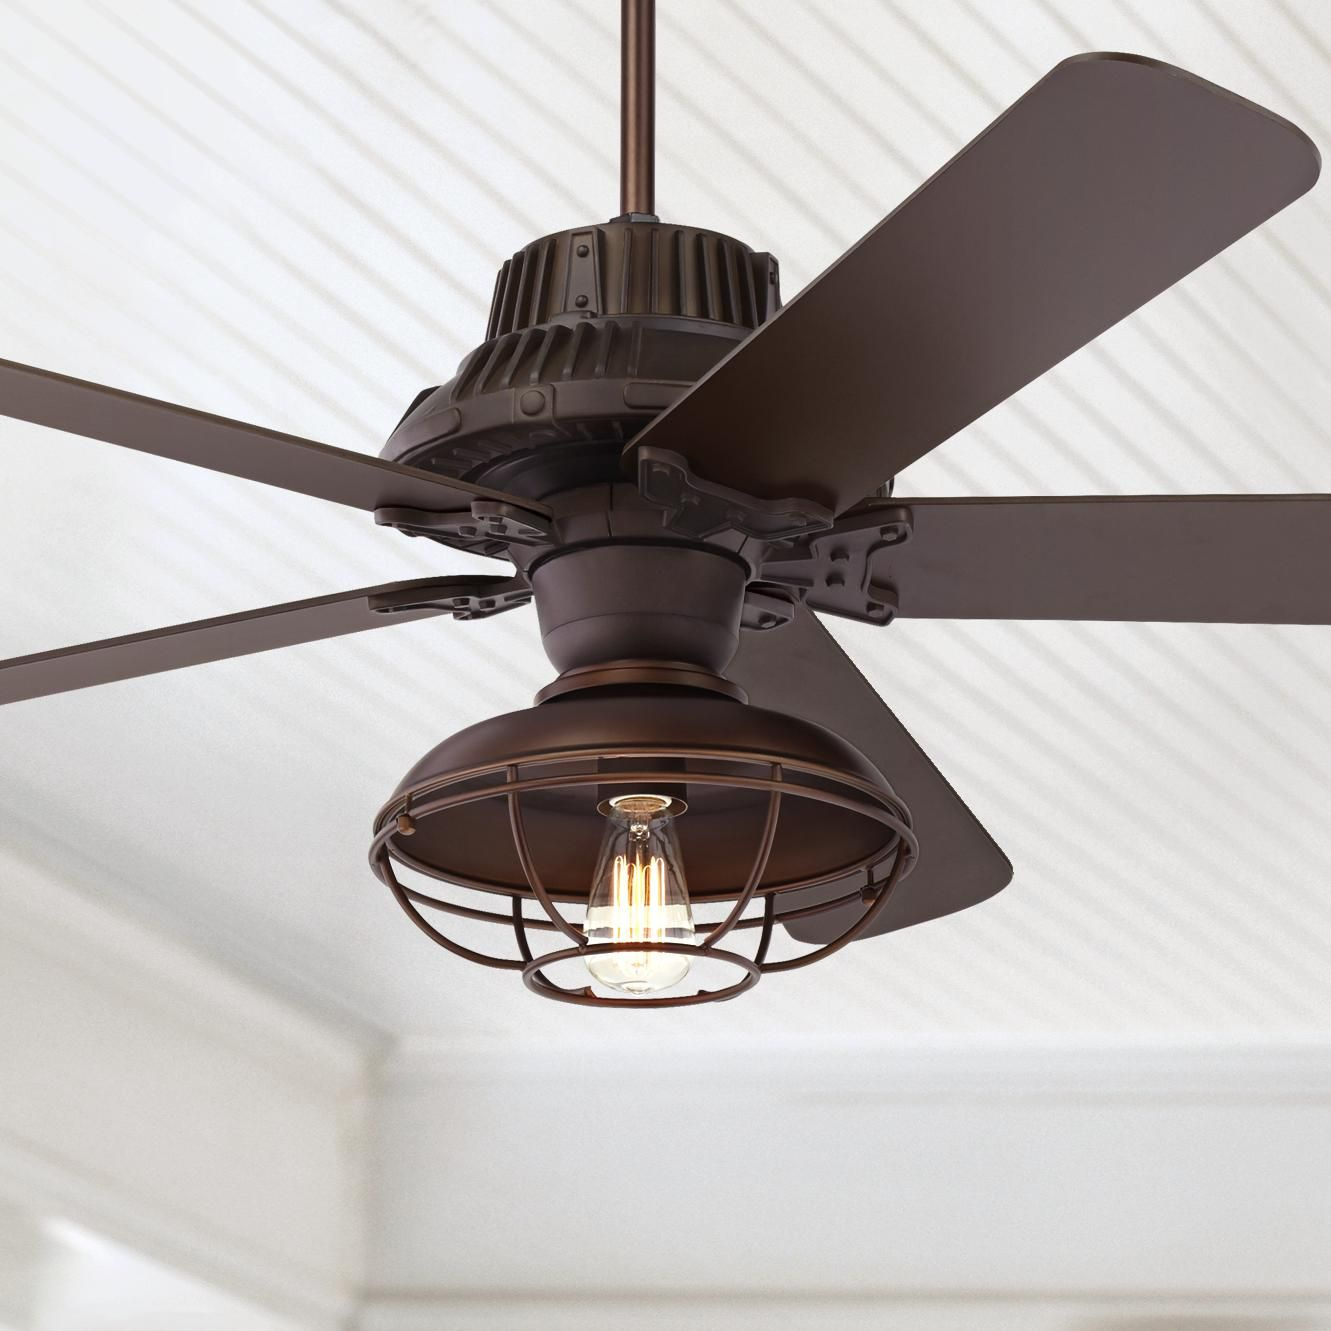 Ceiling Fans 60 Industrial Forge Led Outdoor Ceiling Fan In 2020 Outdoor Ceiling Fans Ceiling Fan Industrial Ceiling Fan